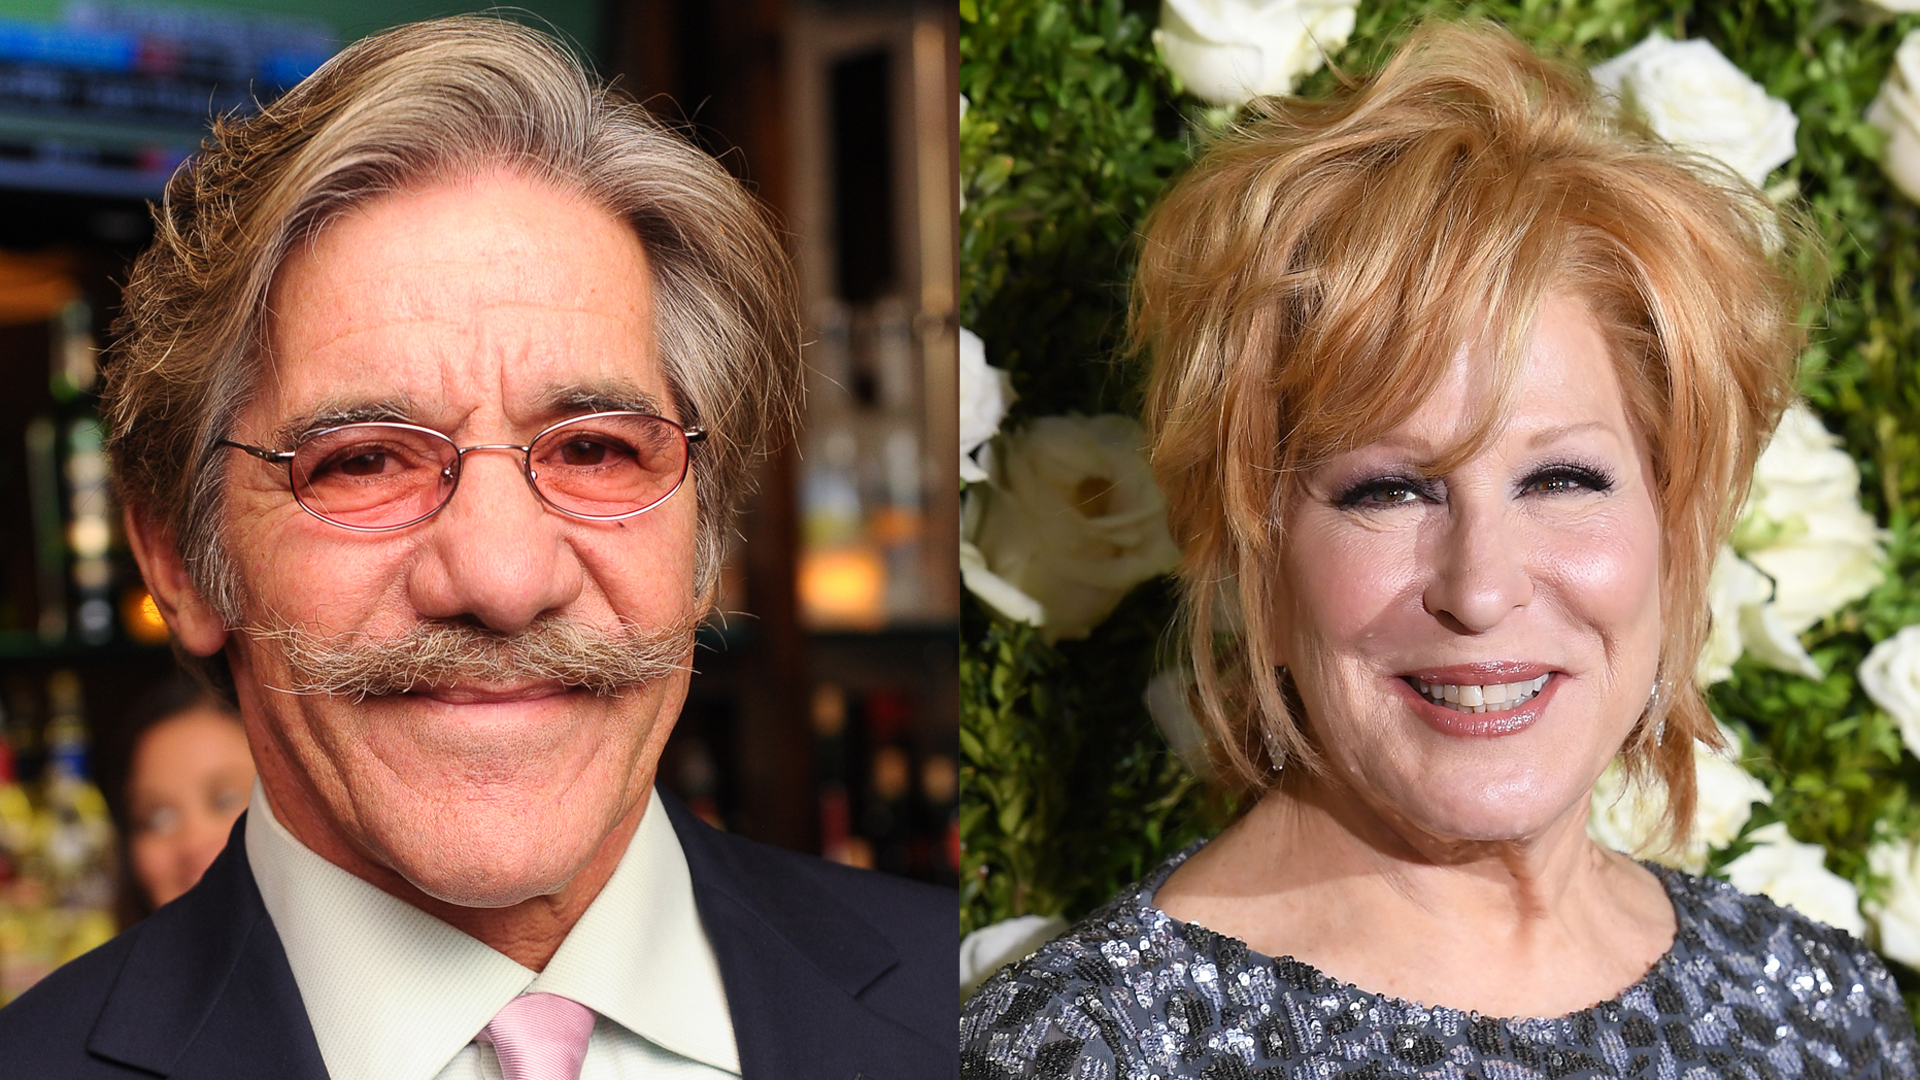 """Geraldo Rivera attends the """"Out For Blood"""" book launch event at Ivy Bar And Grill on Nov. 4, 2013, in New York City. (Credit: Rommel Demano/Getty Images) Bette Midler attends the 2017 Tony Awards at Radio City Music Hall on June 11, 2017 in New York City. (Credit: Angela Weiss /AFP/Getty Images)"""